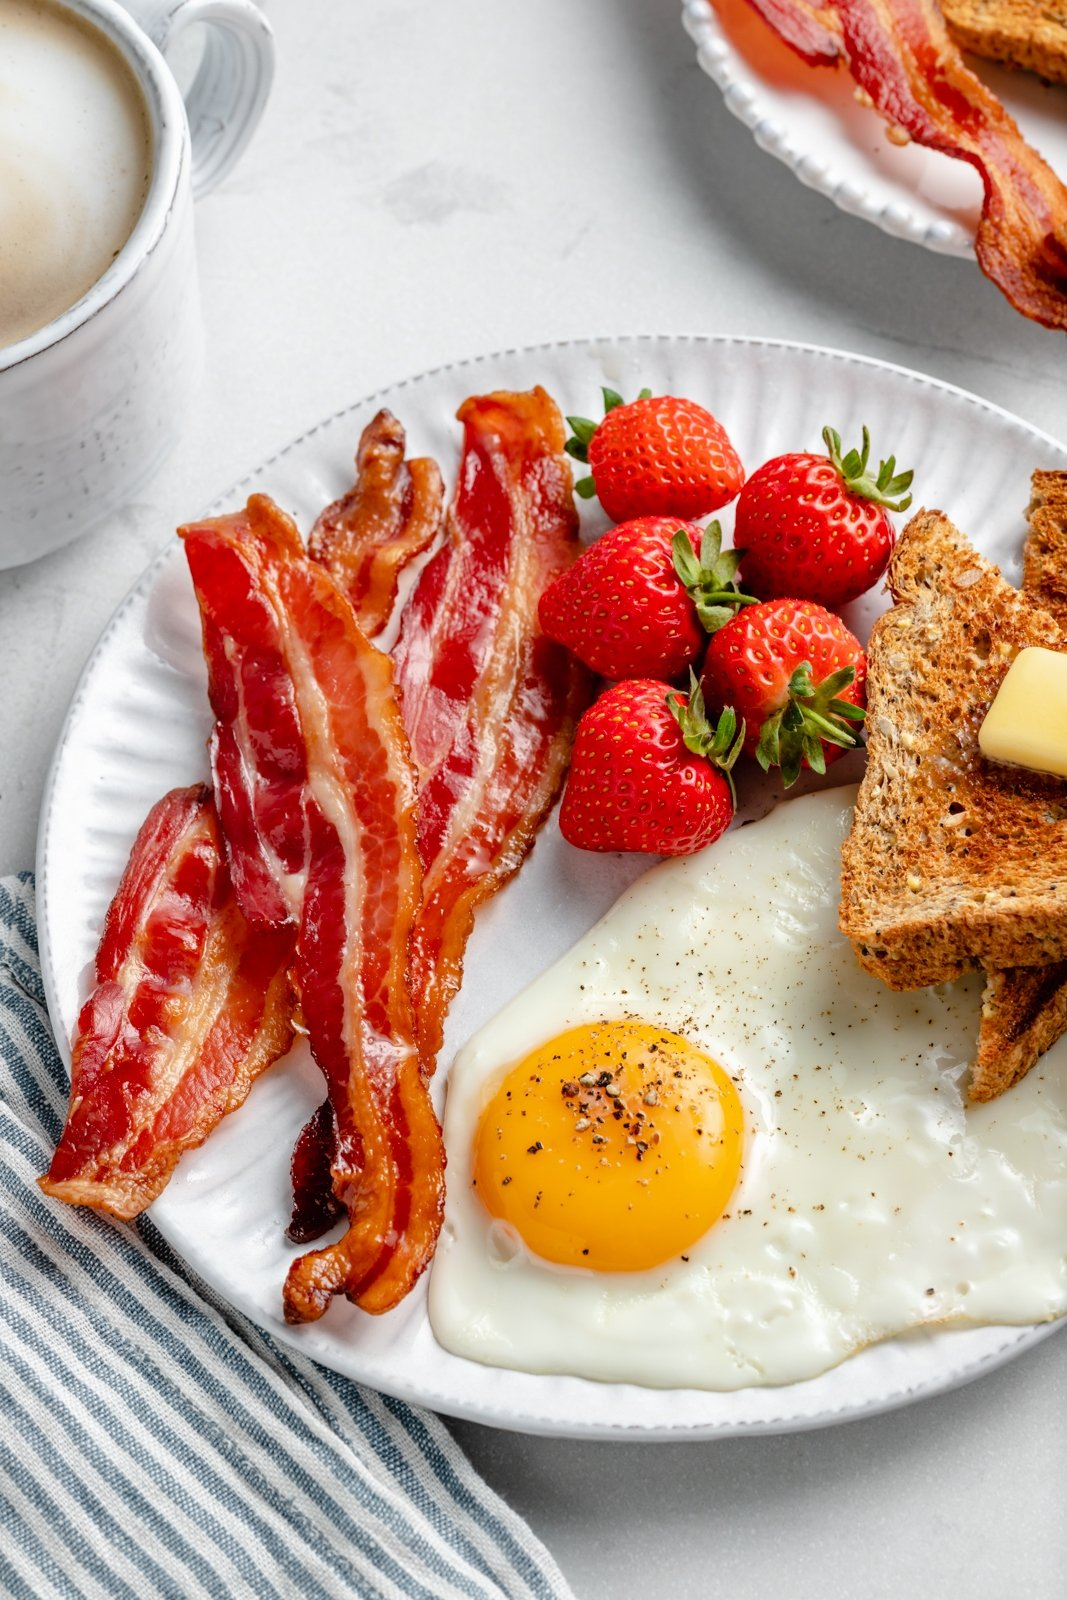 oven-baked bacon on a plate with an egg, strawberries and toast